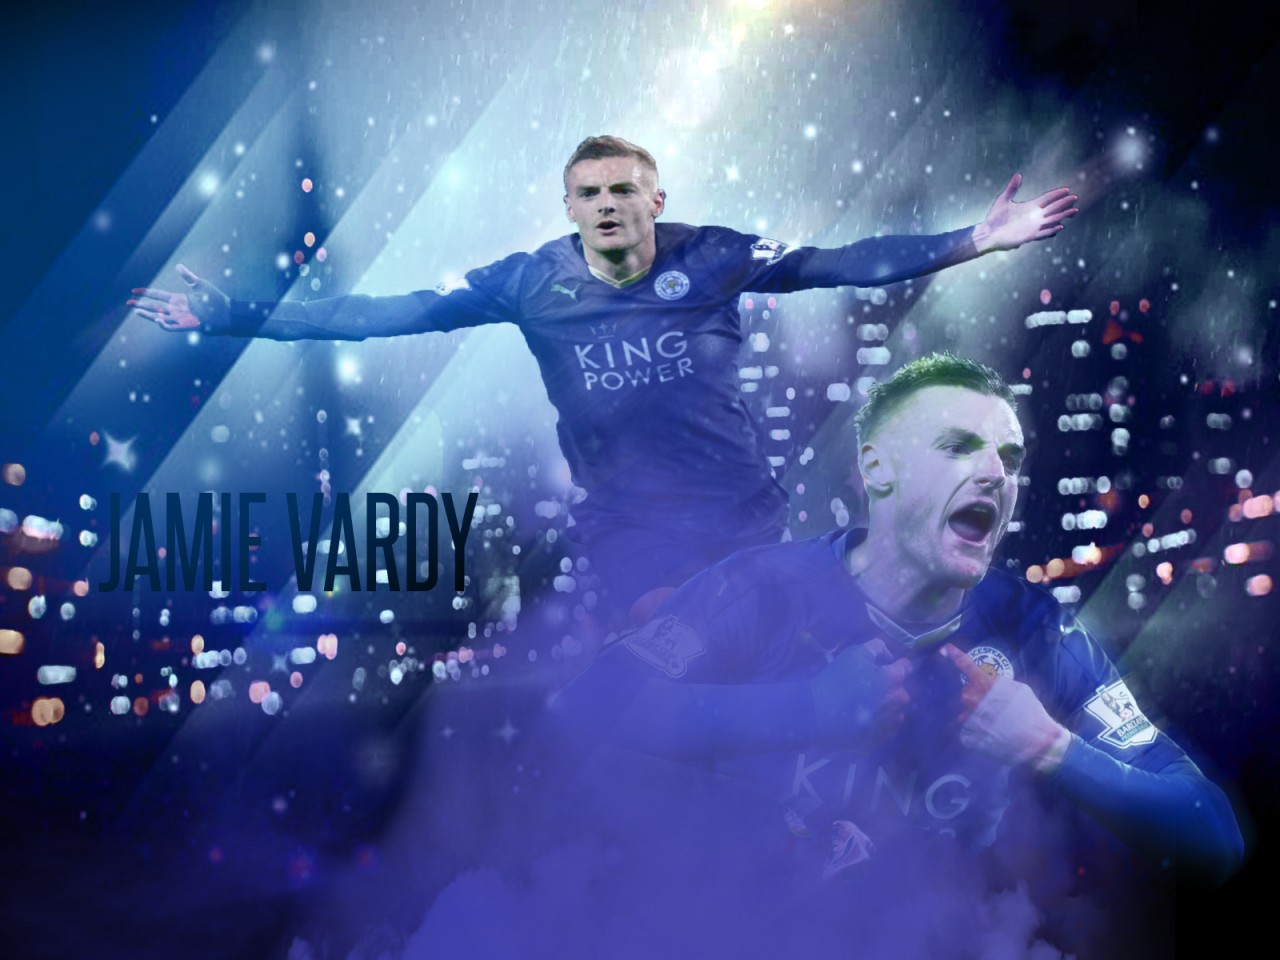 Jamie Vardy Stock Photos